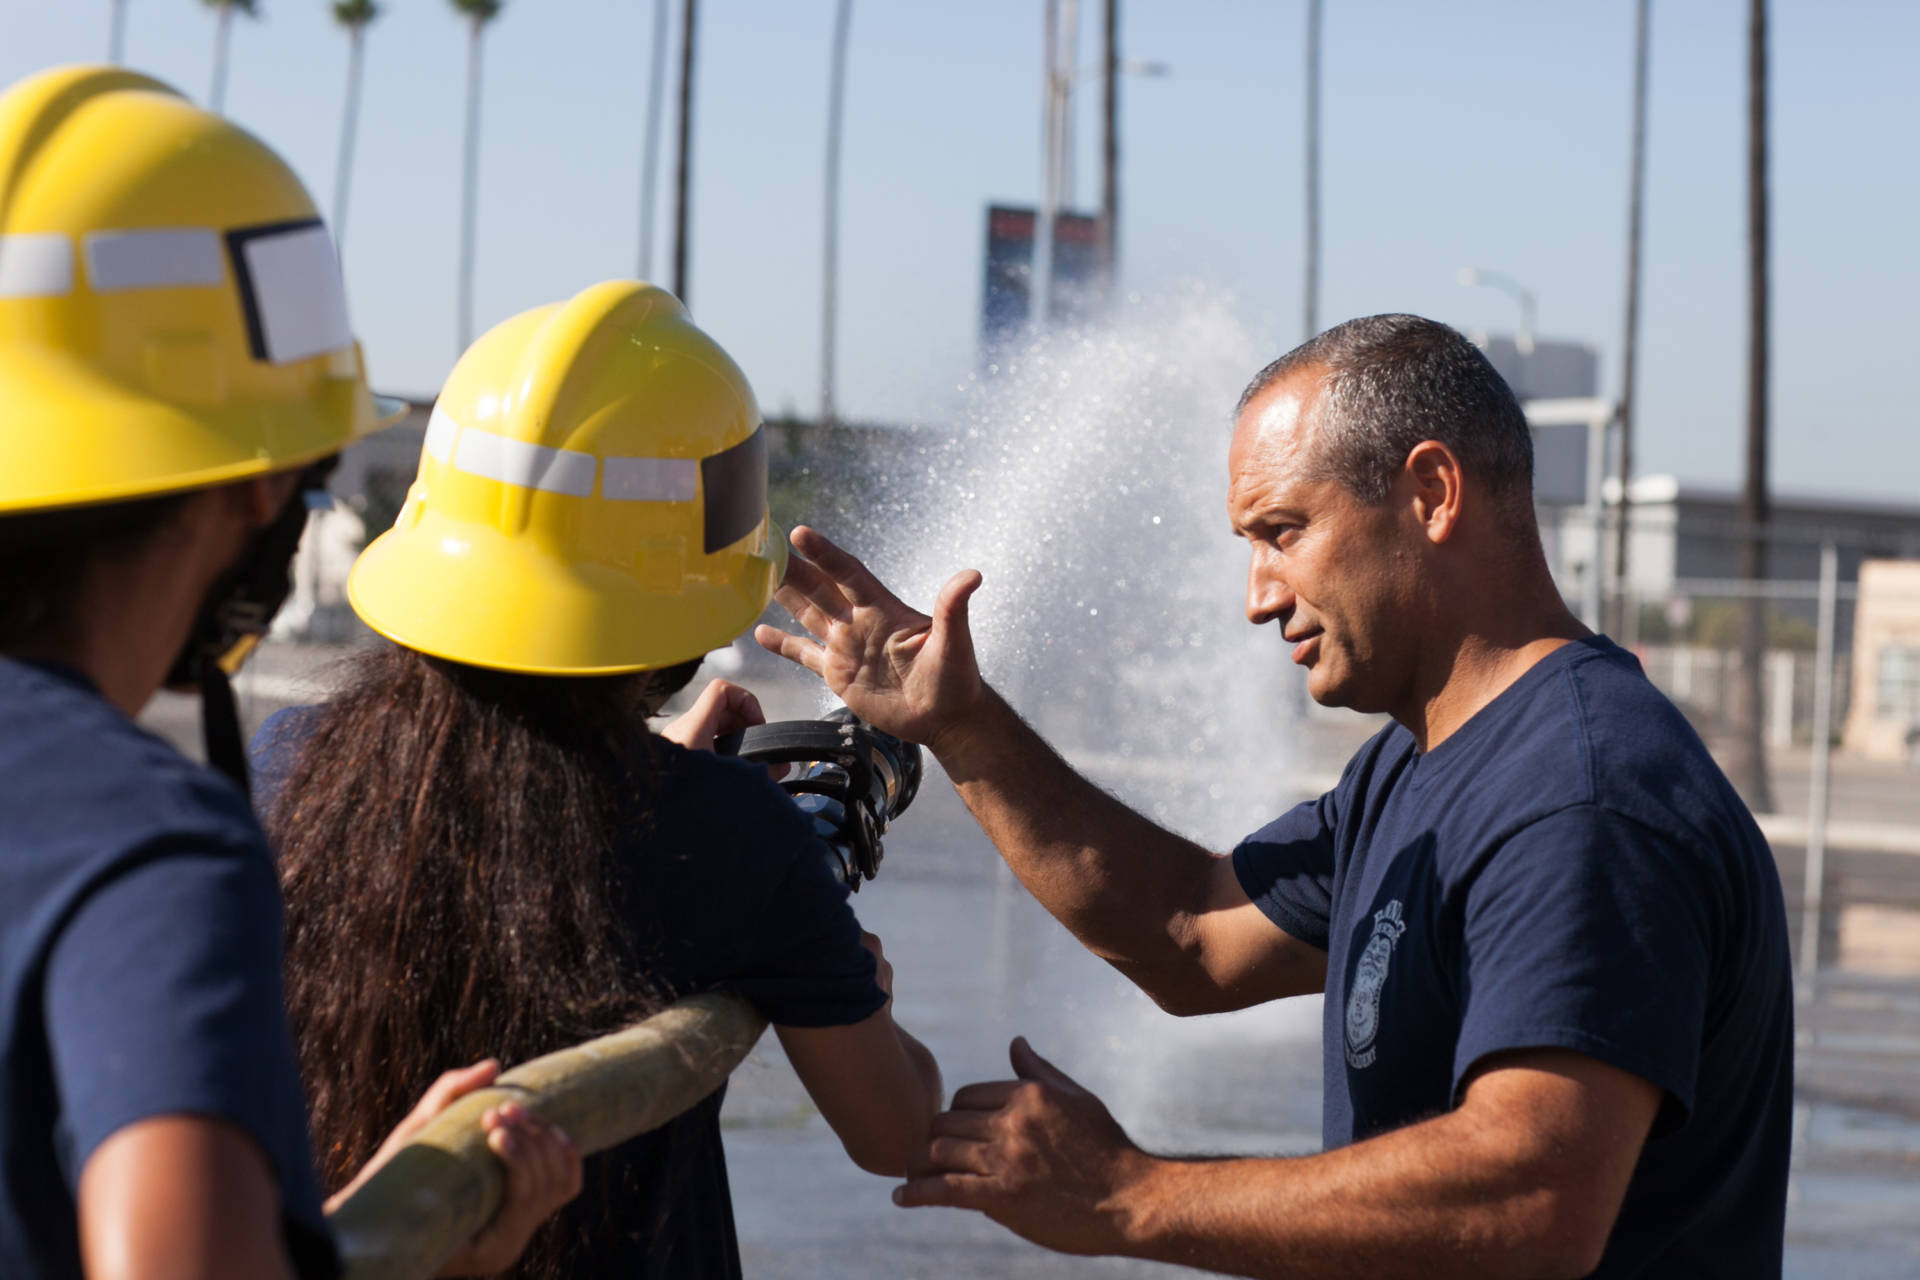 LAFD Capt. Eddie Marez instructs cadets at Banning High on how to operate a fire hose. Roxanne Turpen/NPR